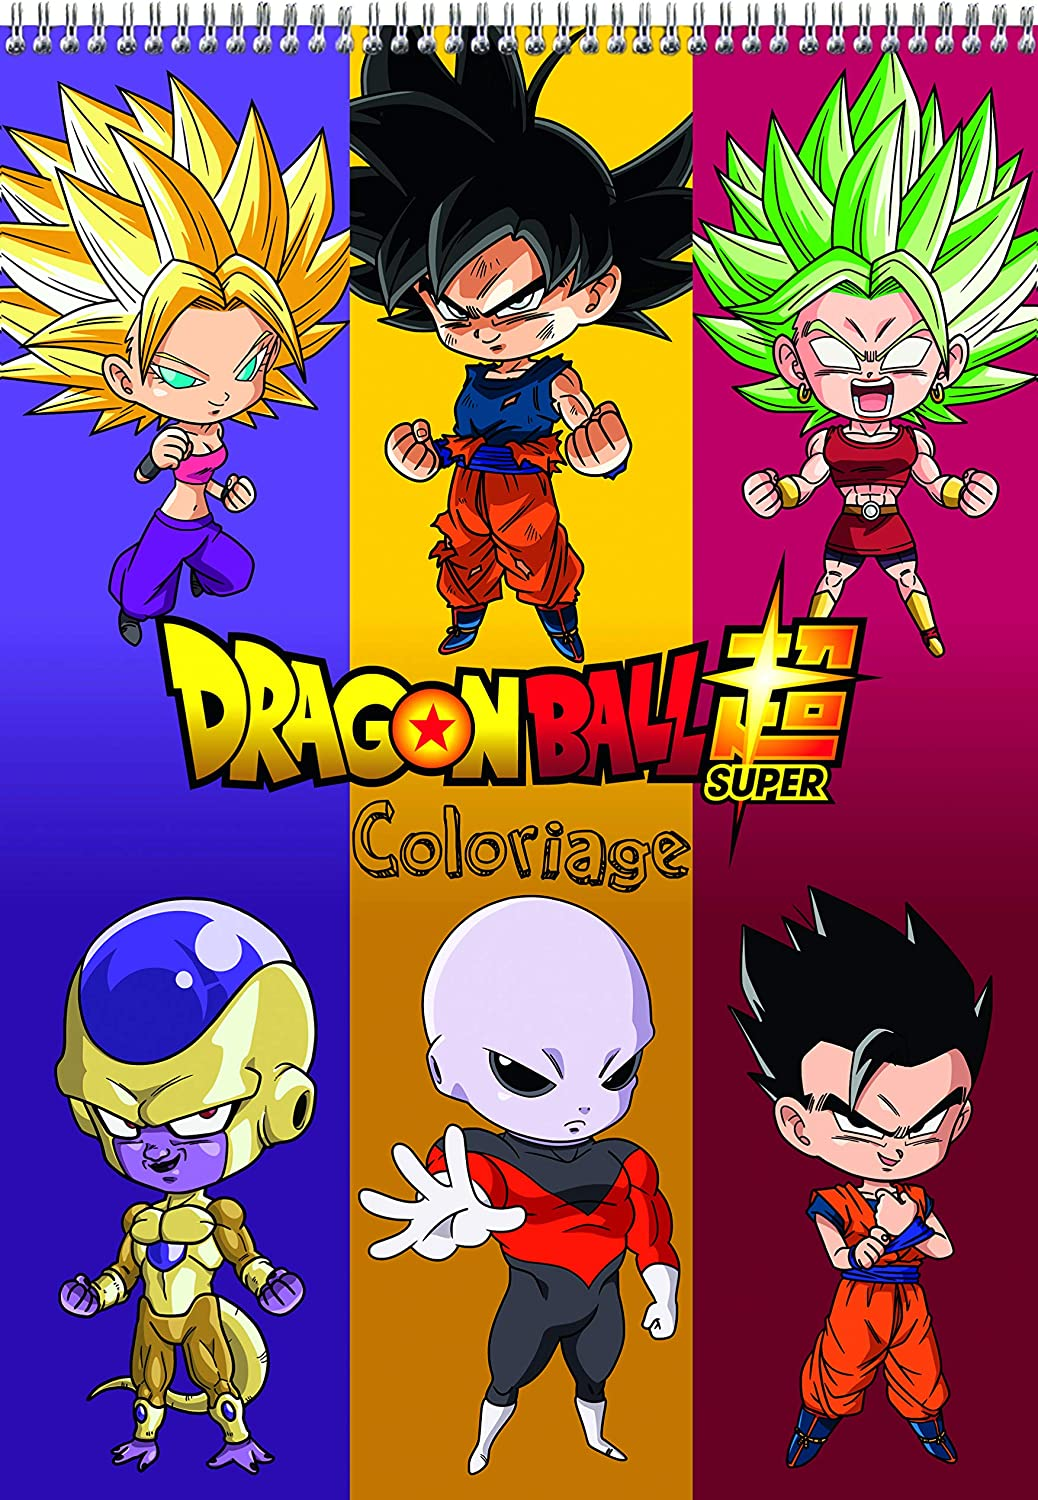 Clairefontaine 812802c Un Bloc De Coloriage Dragon Ball Super 84 Pages Imprimees 21x29 7 Cm Couverture Visuel Aleatoire Amazon Fr Fournitures De Bureau